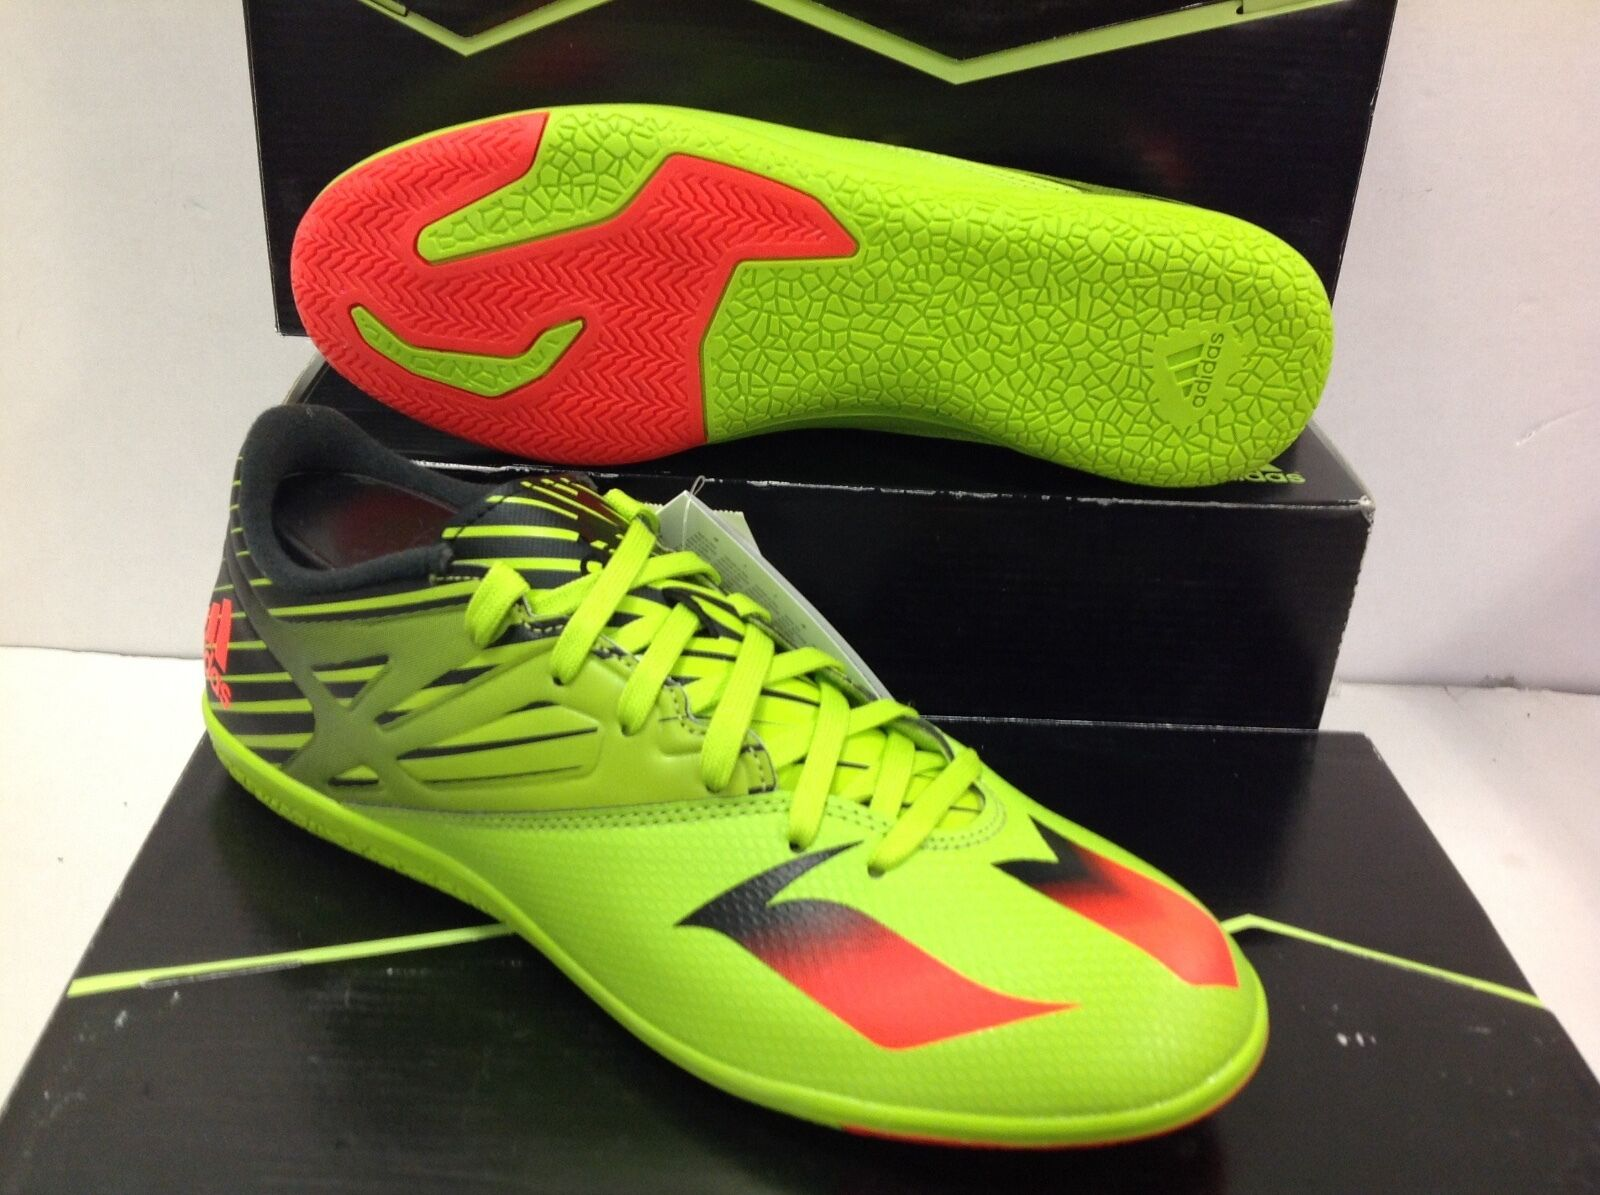 Adidas Messi 15.3 IN Men's Football Soccer Boots shoes, Size